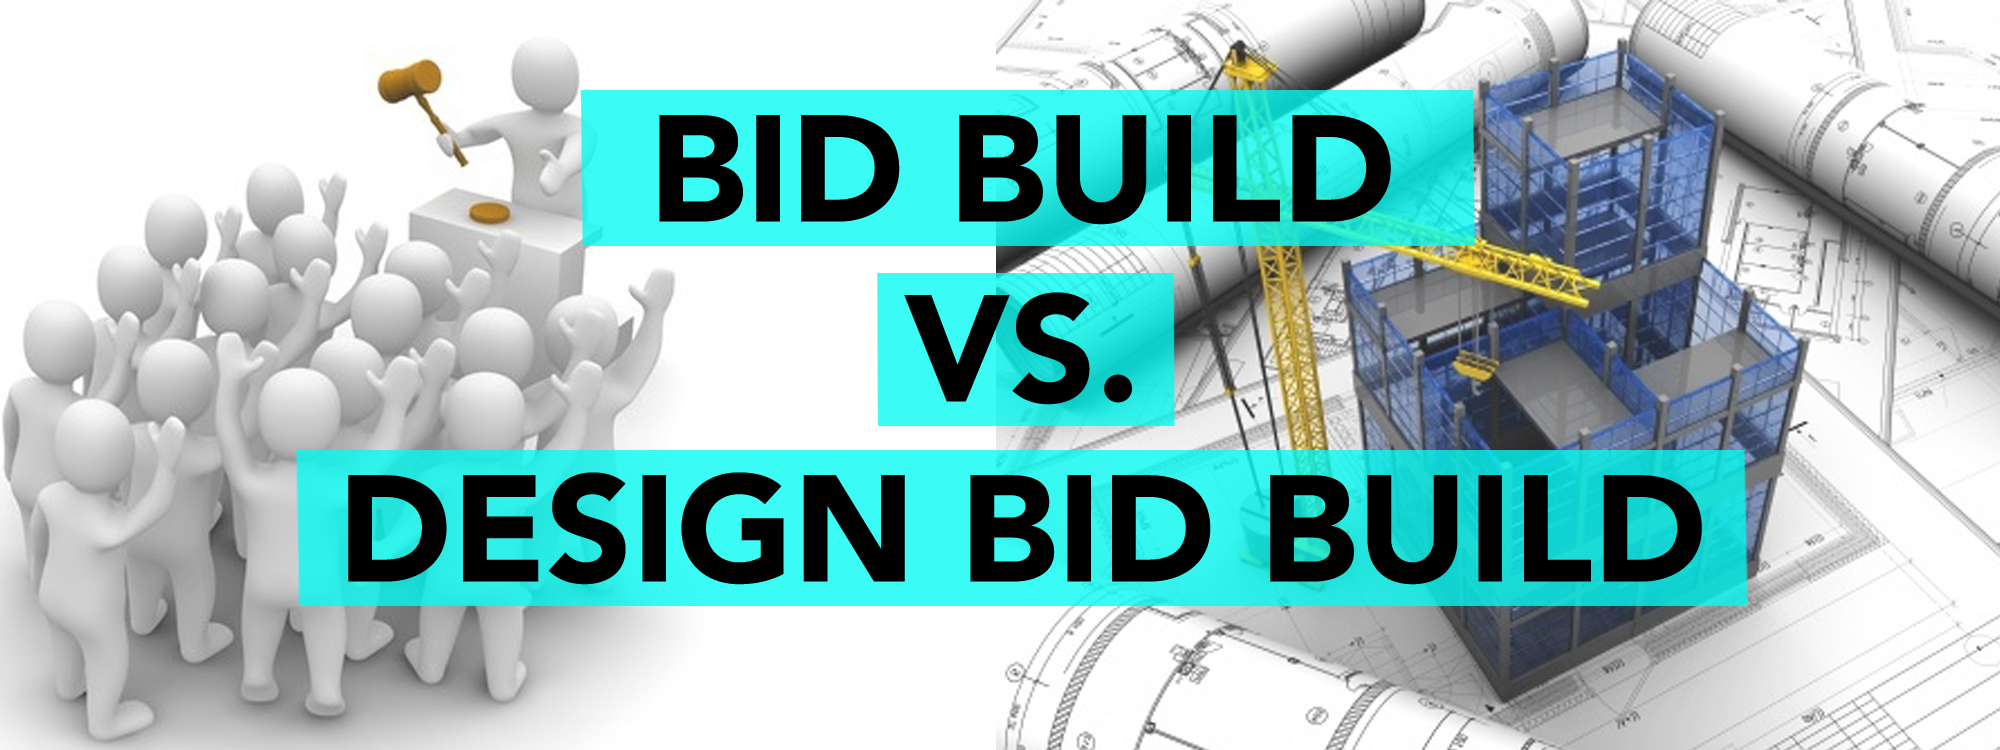 Bid Build vs Design Bid Build